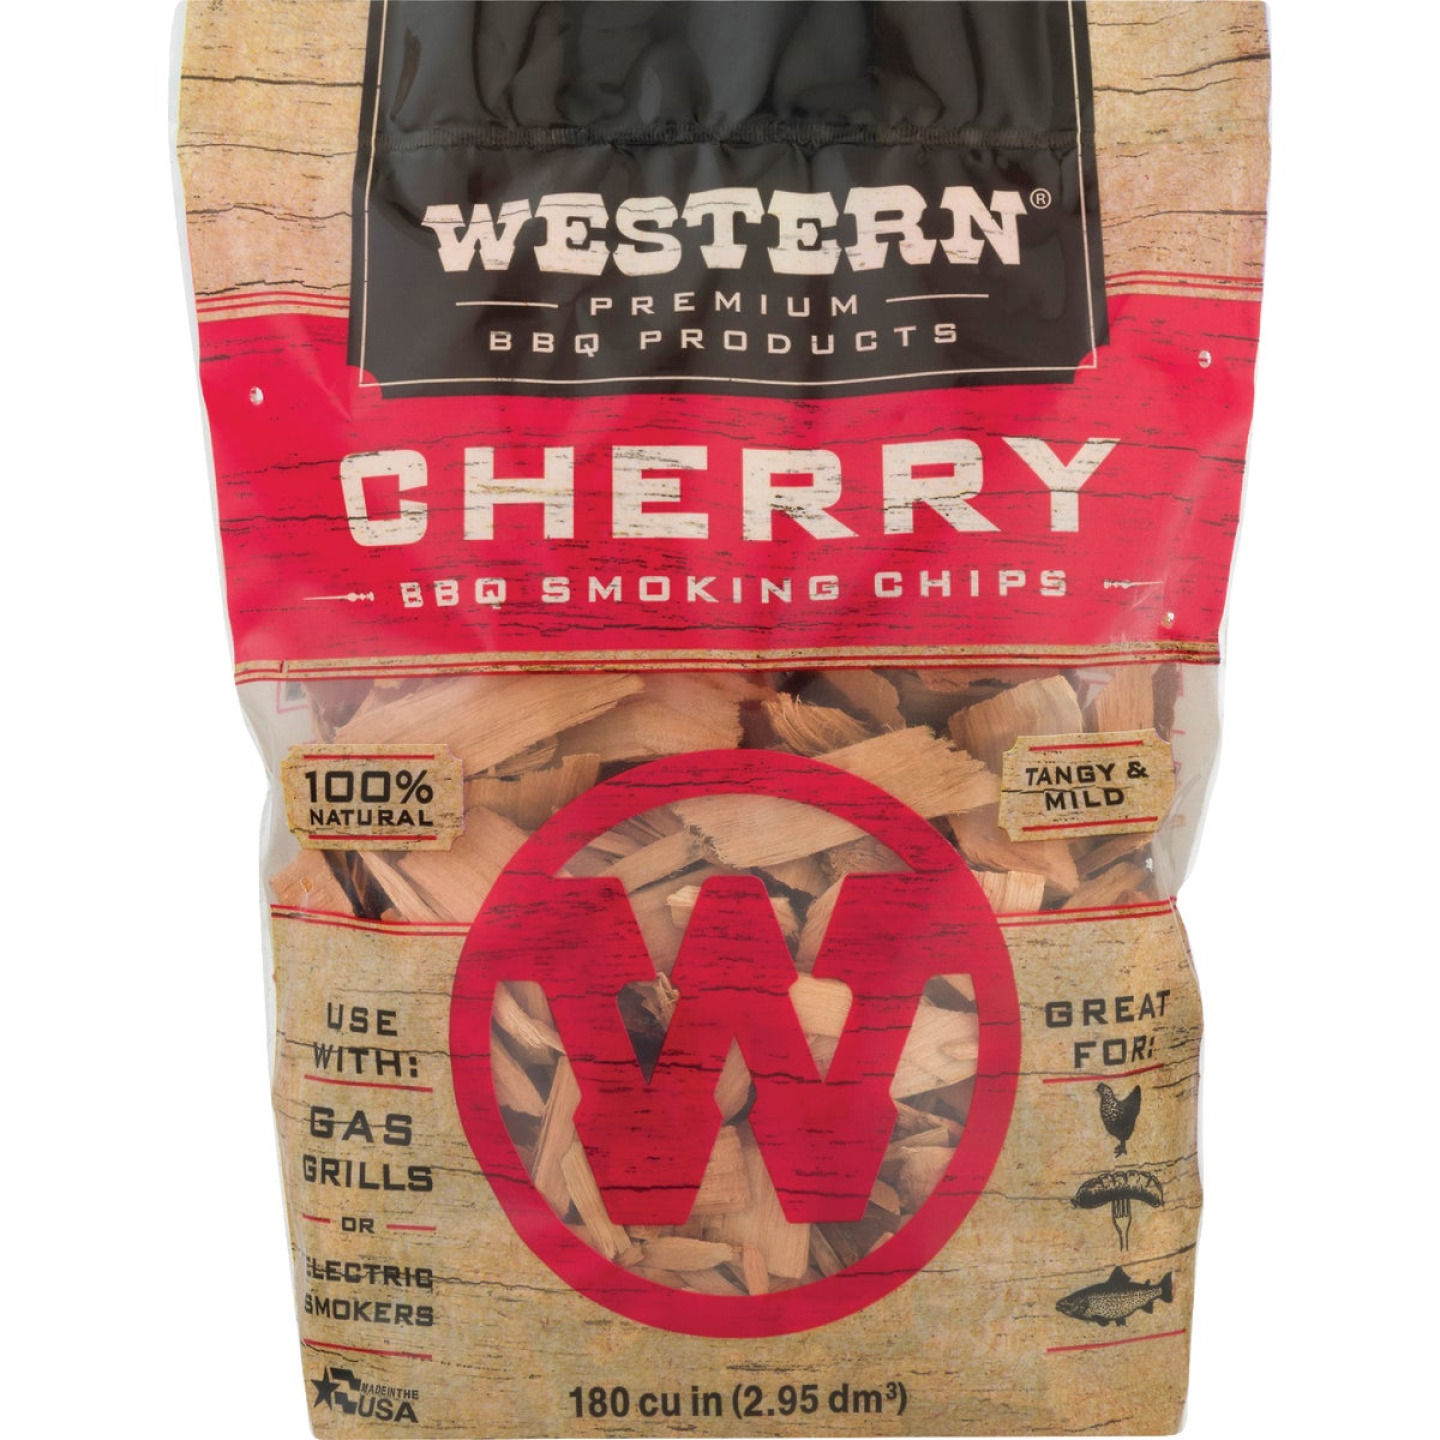 Western 2 Lb. Cherry Wood Smoking Chips Image 3